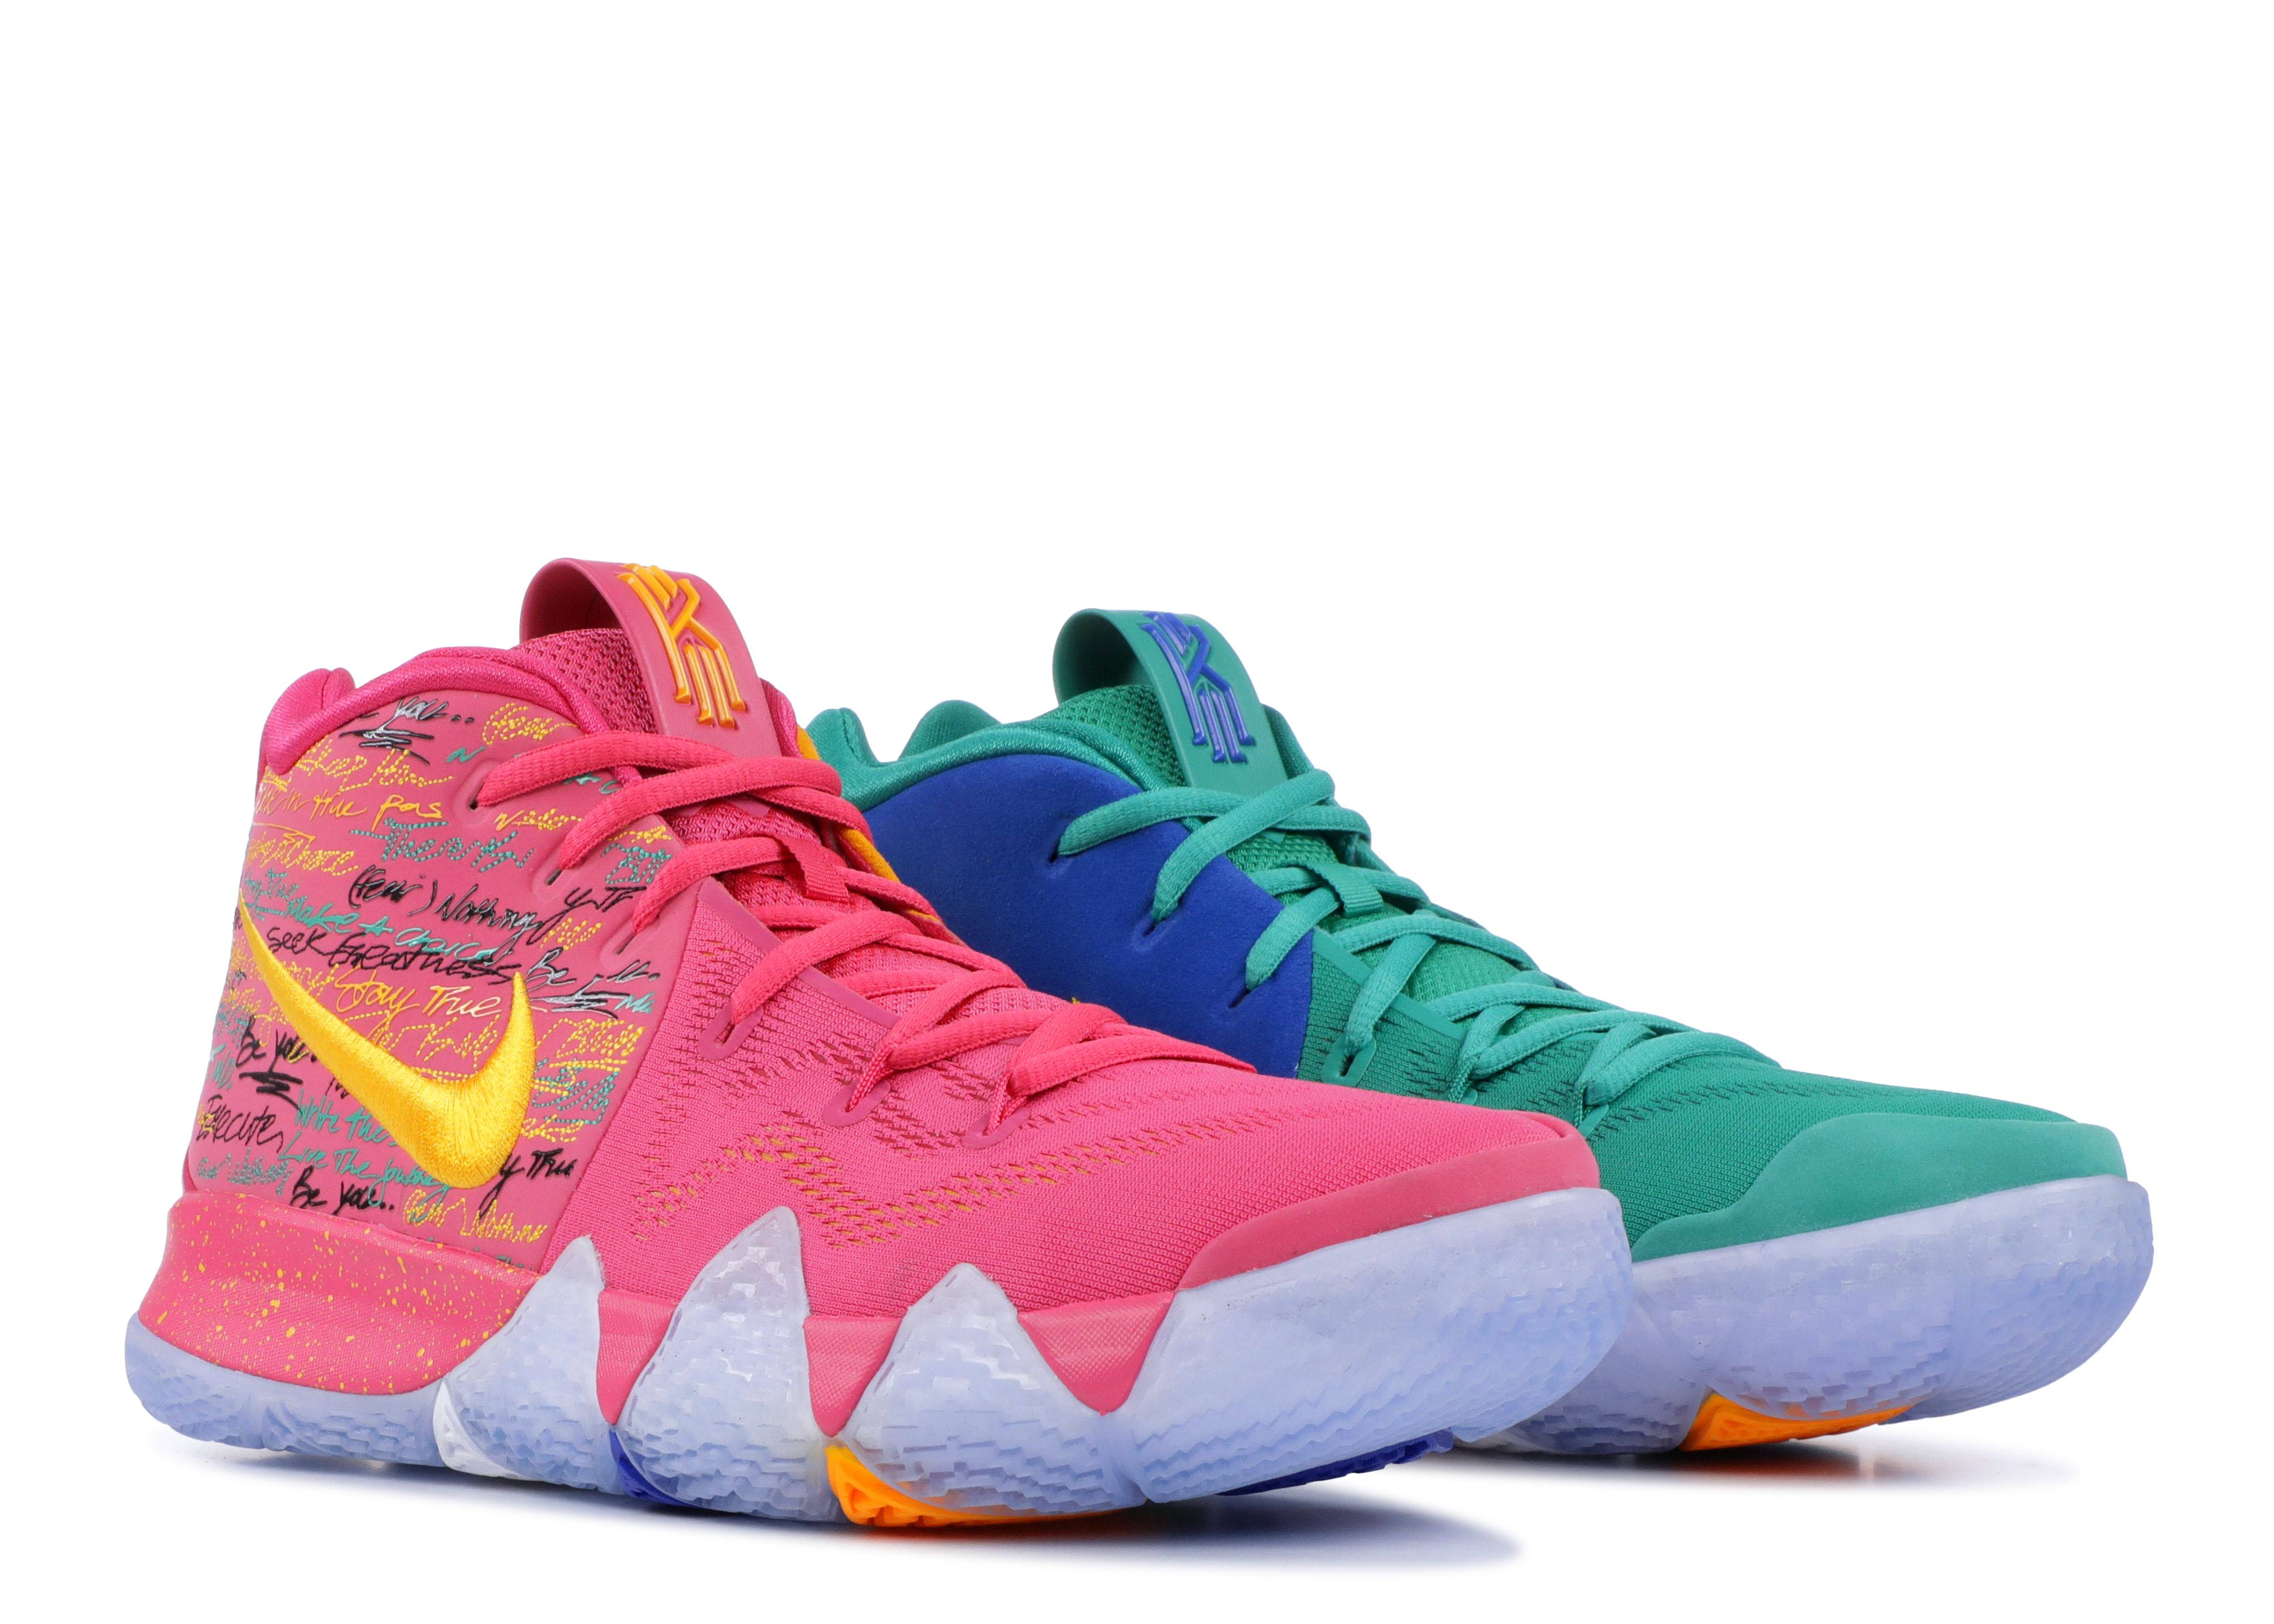 ed2ec3da7ab ... discount code for nike. kyrie 4 nba 2k18 friends and family 3f2de 78060